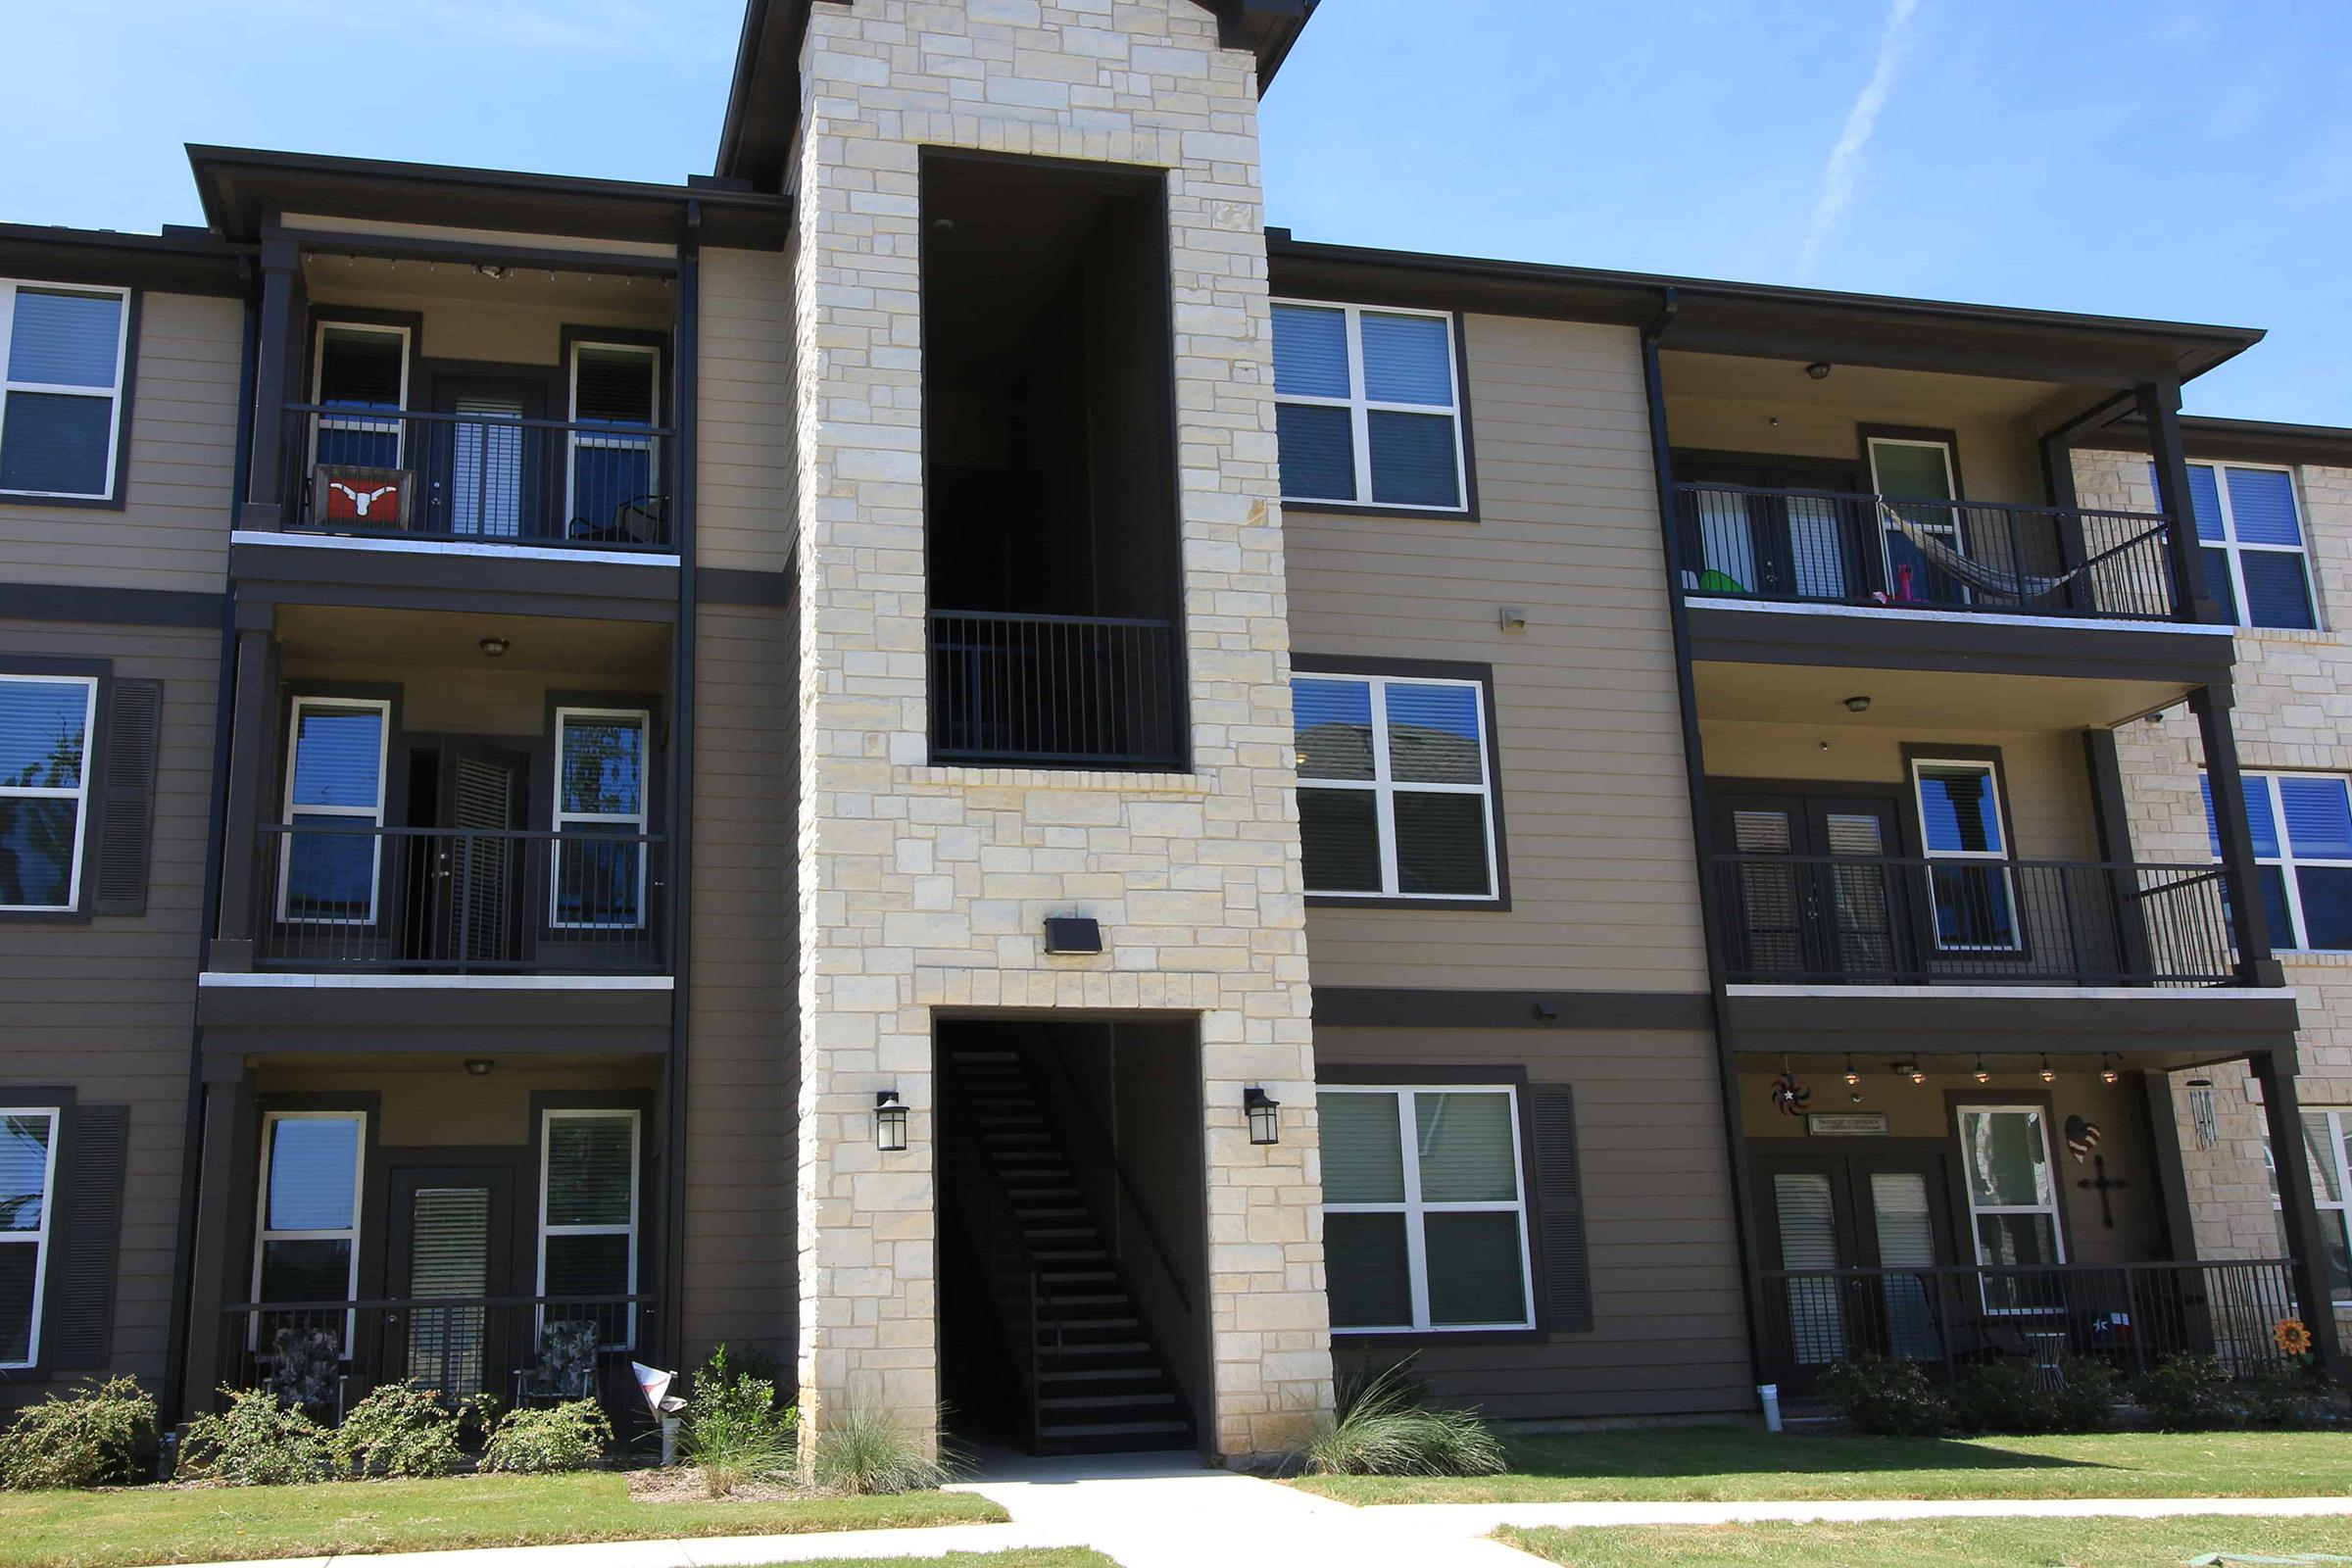 WELCOME HOME TO REATA WEST APARTMENTS